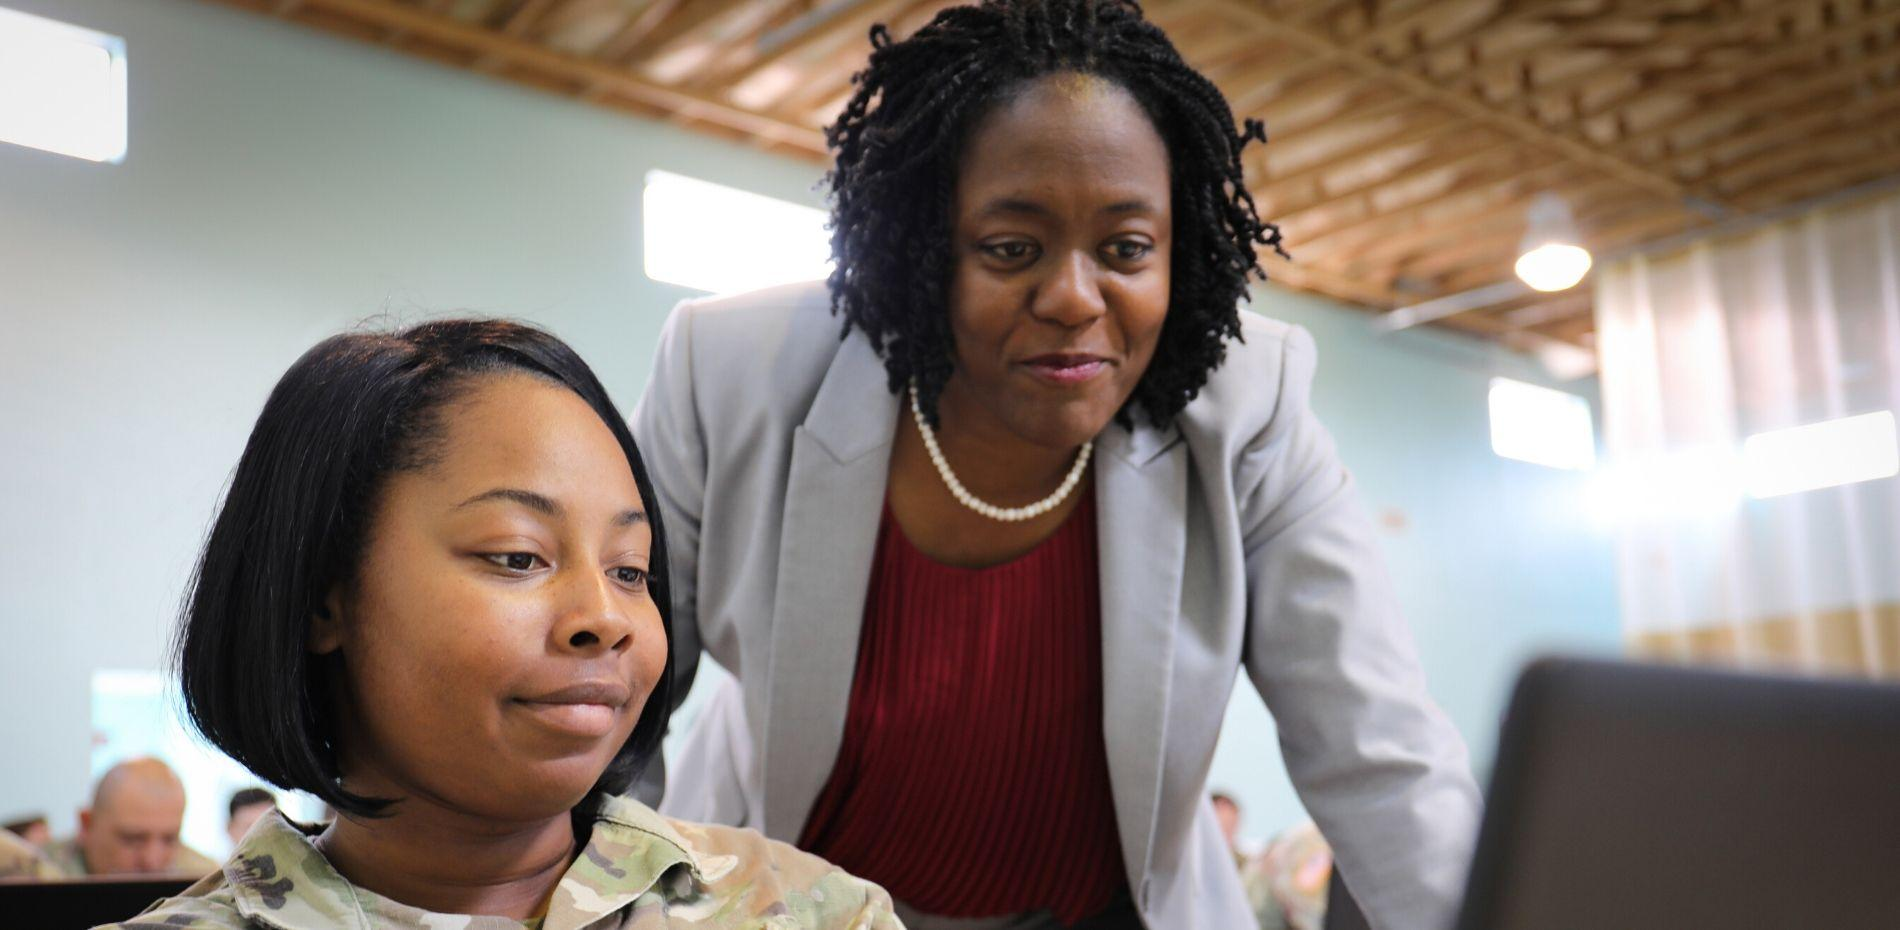 Wanda communicates with military personnel to ensure that they are aware of all career development opportunities available through WorkSource.